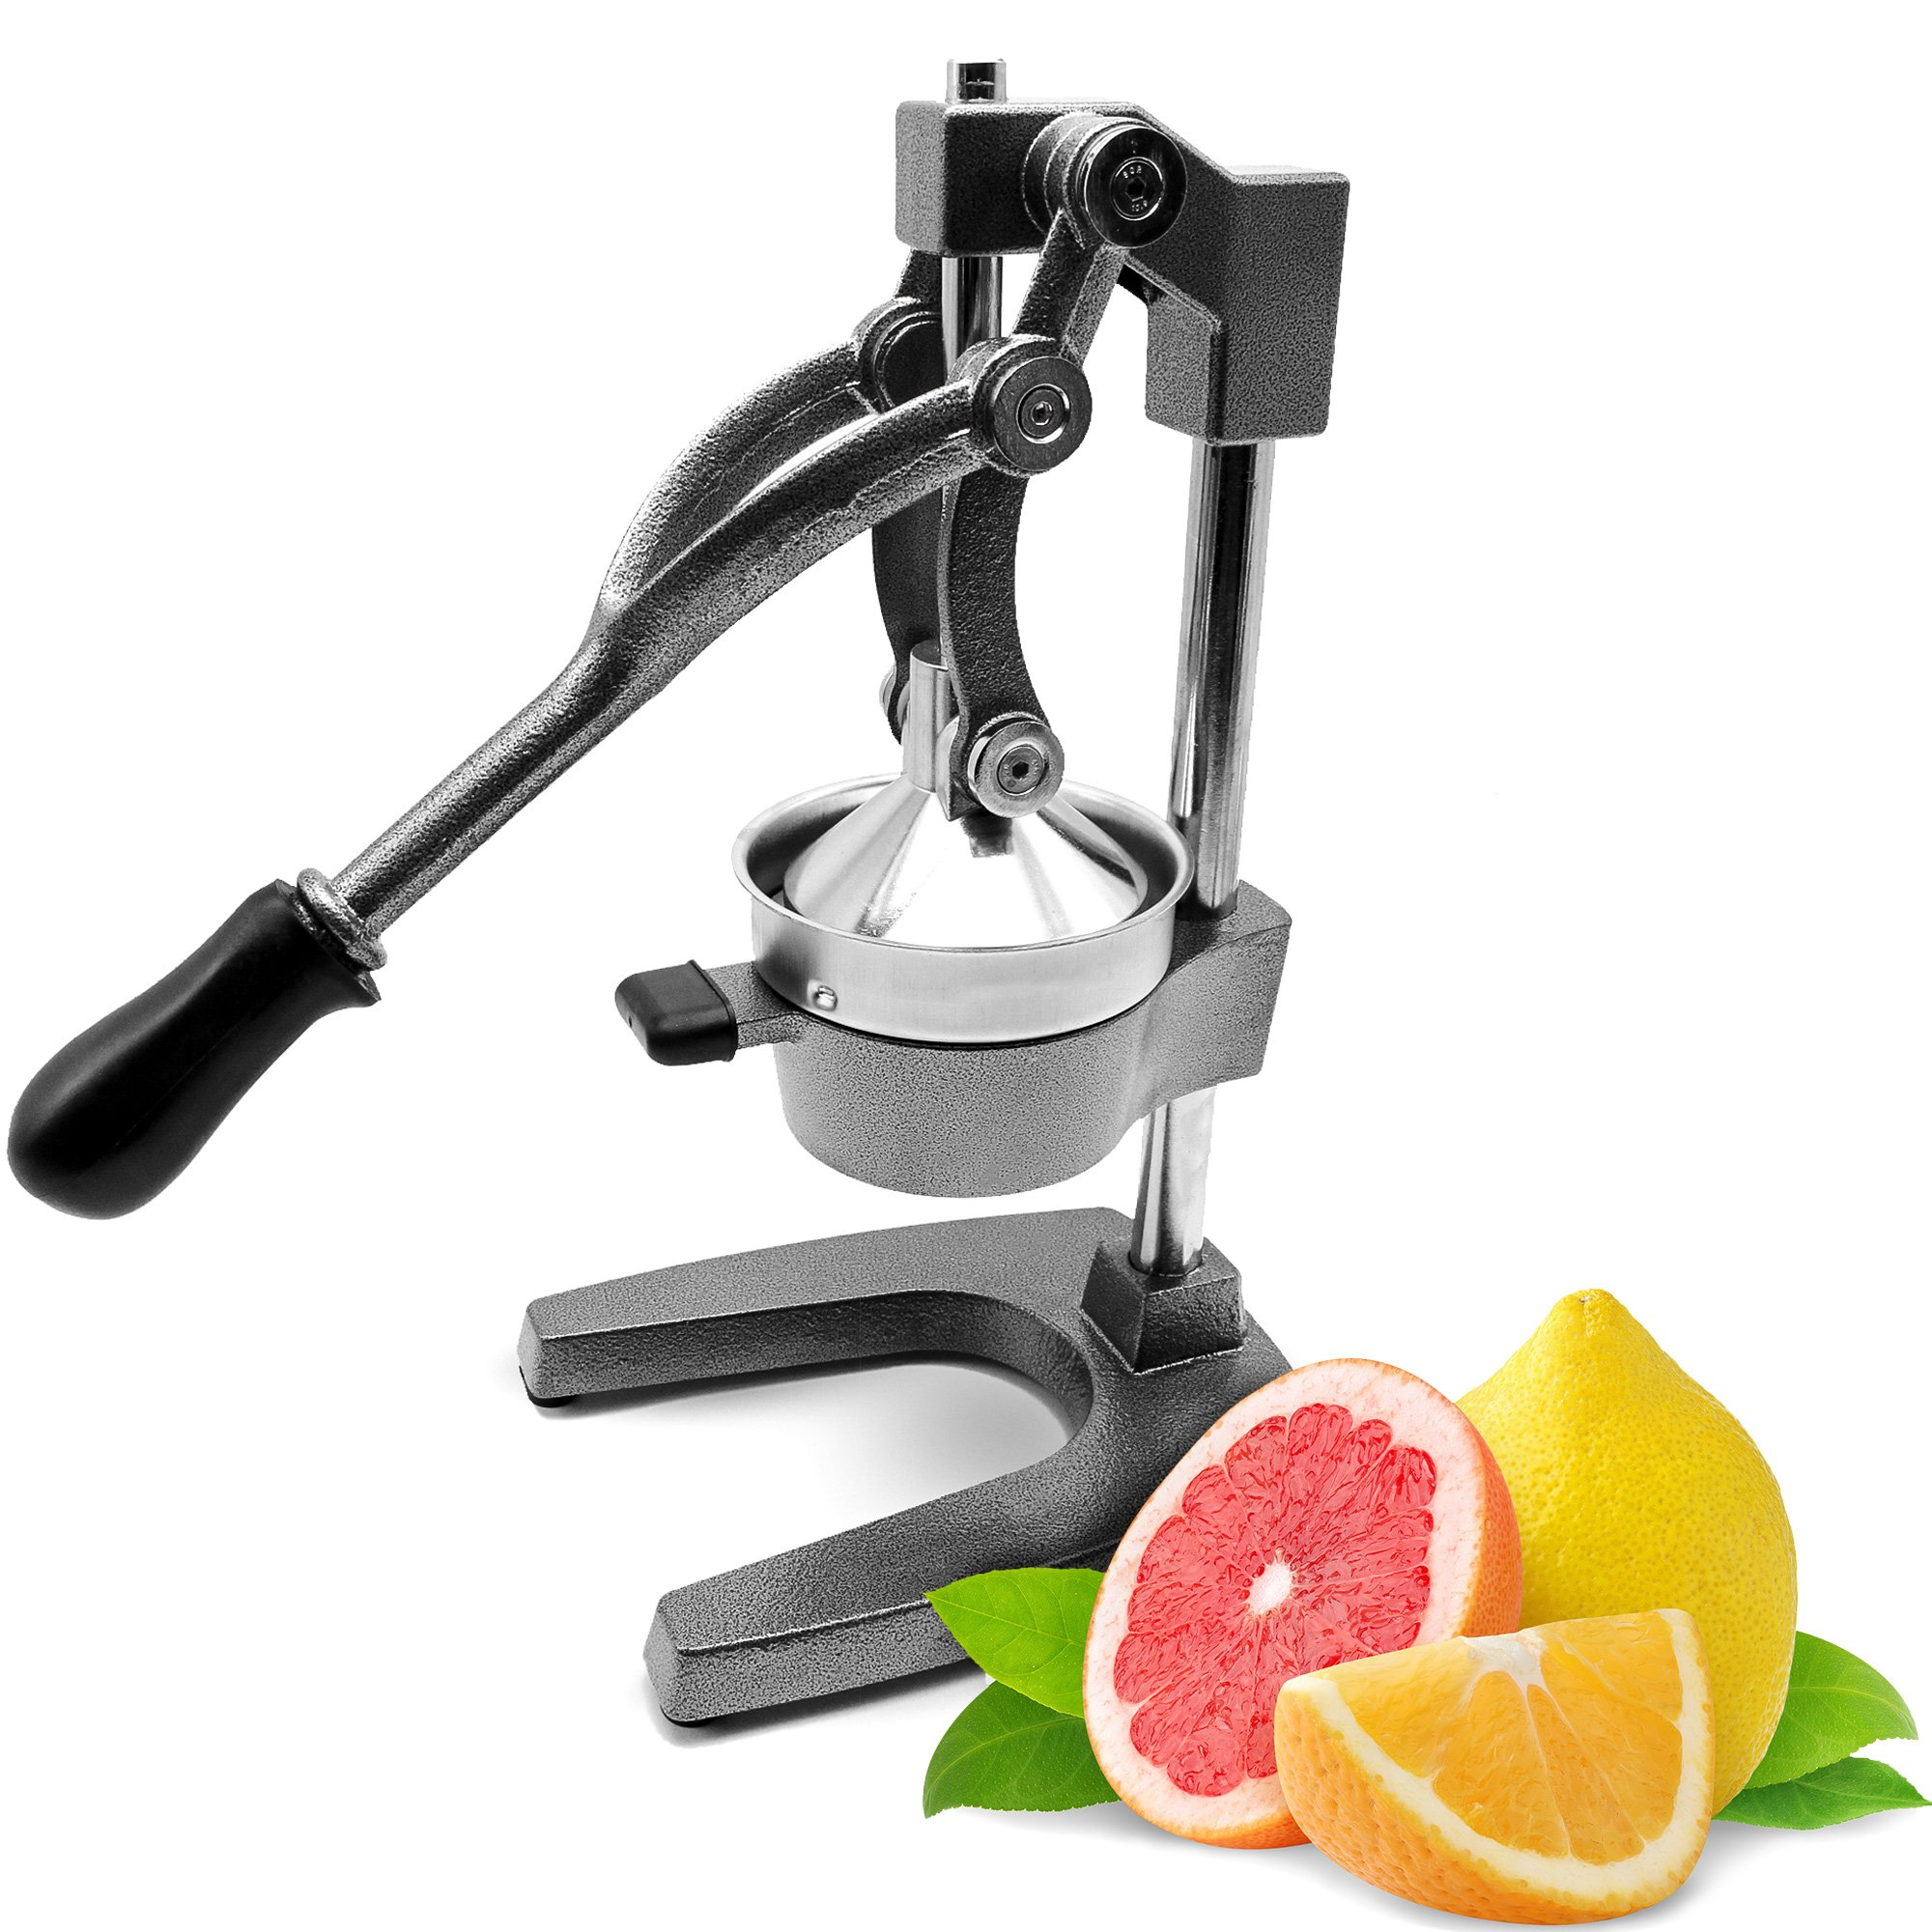 Commercial Manual Orange Juicer Citrus Press And Lemon Squeezer - Premium Quality Heavy Duty Best For Pomegranate Grapefruit Lime- By Experts Of KP Industry (Gray)